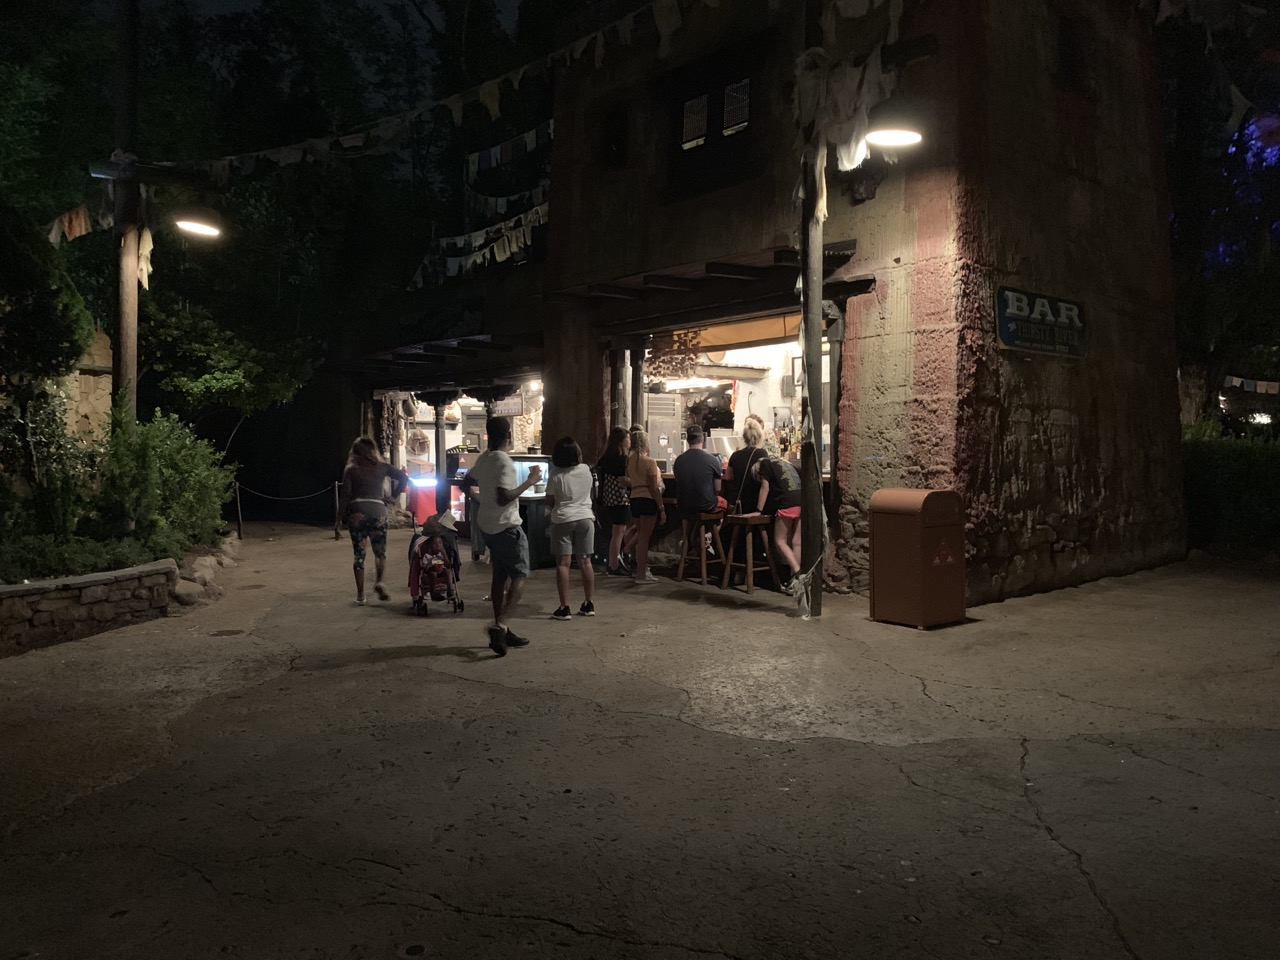 disney world animal kingdom after hours 17 thirsty river.jpeg